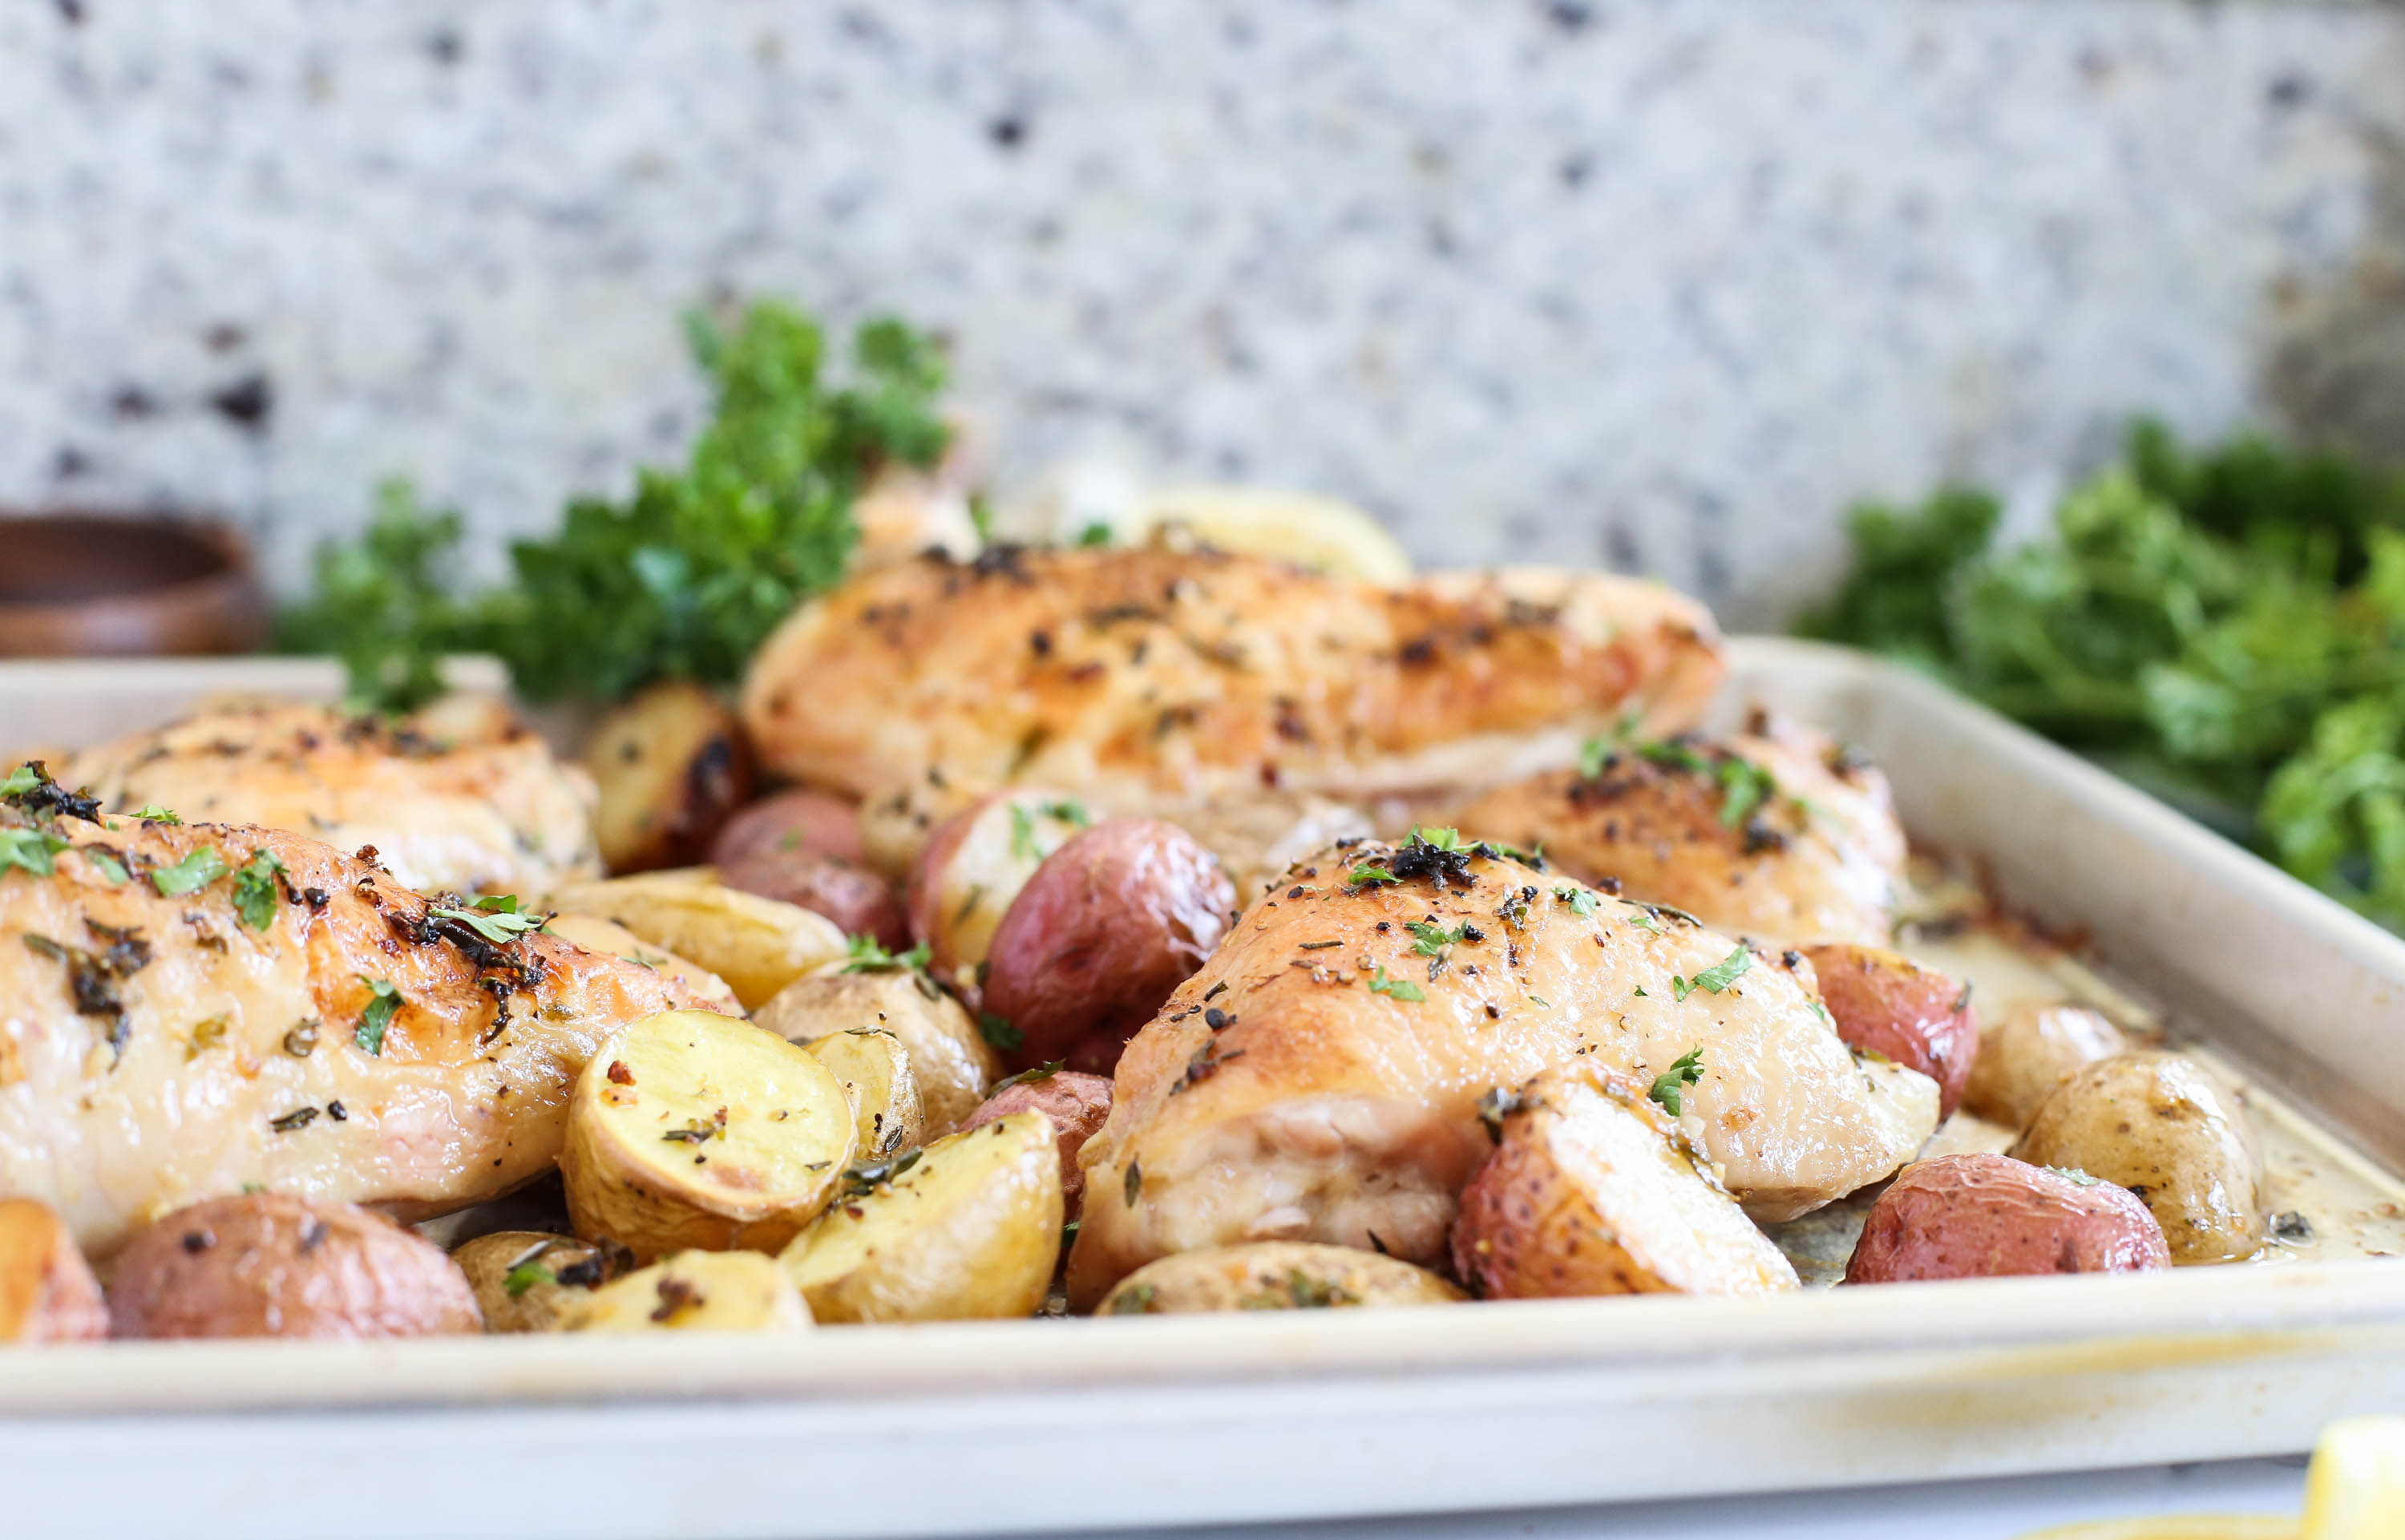 Herb-Roasted Chicken with Potatoes via The District Table